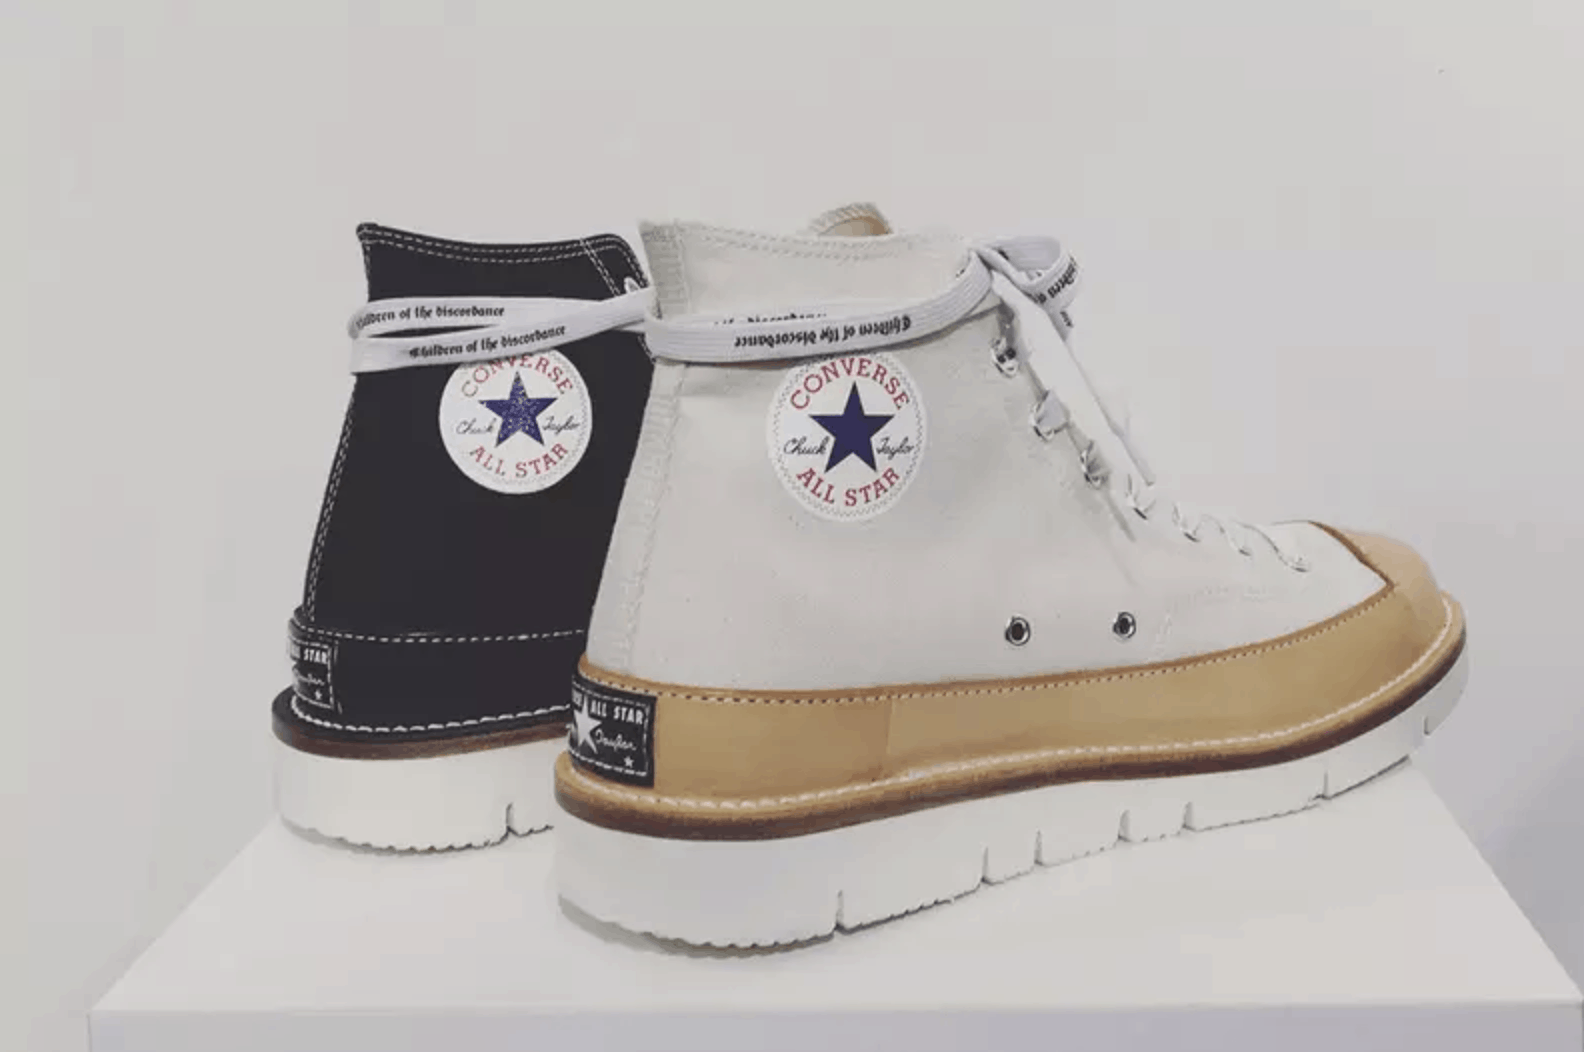 5. Children of the Discordance x RECOUTURE x Converse Chuck Taylor Remake